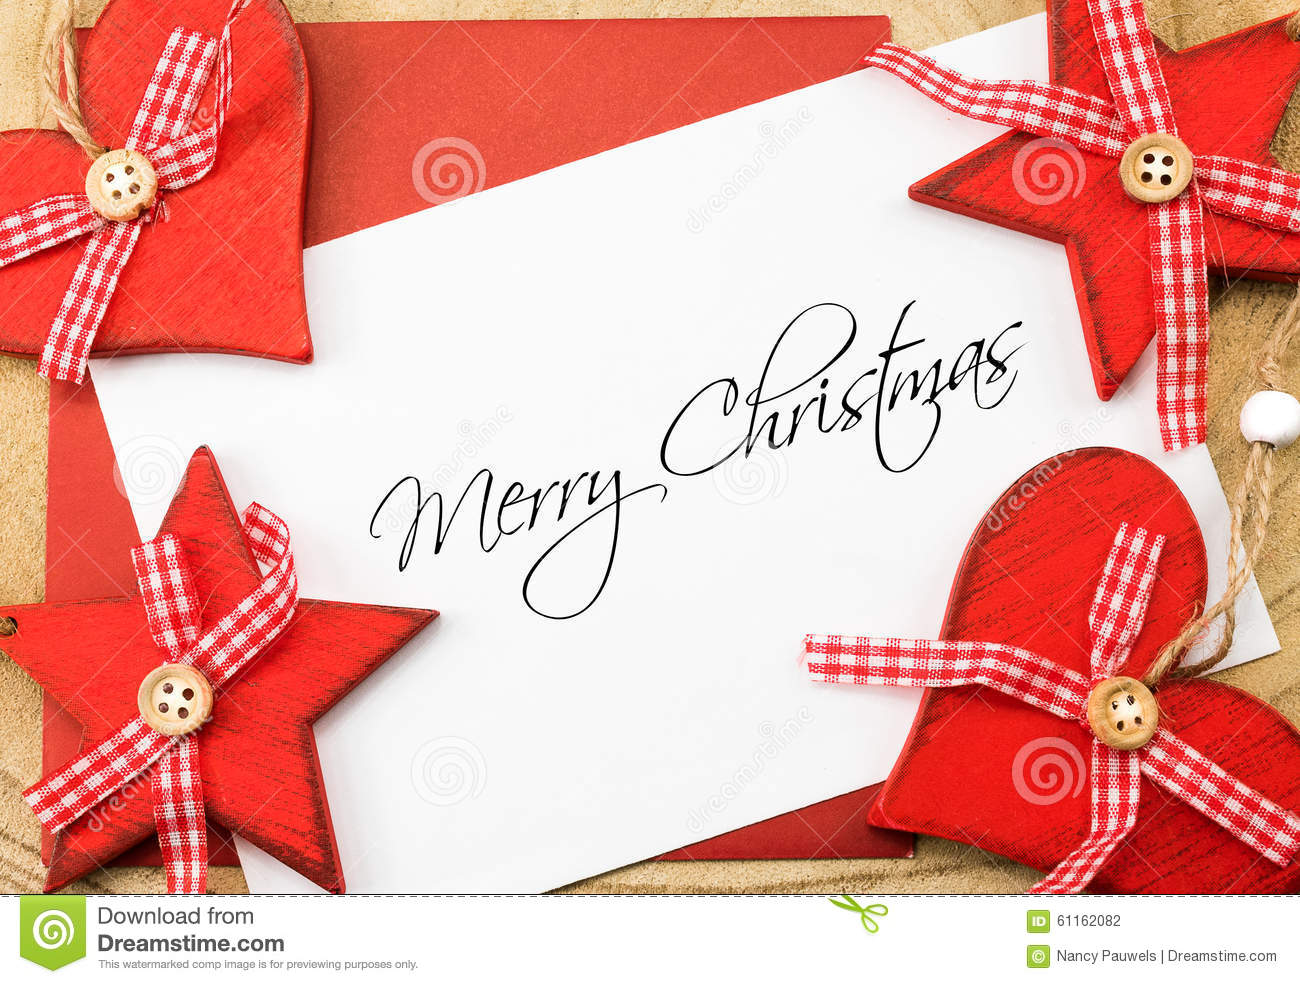 Merry Christmas Greetings Card, Red And White Stock Photo - Image of ...